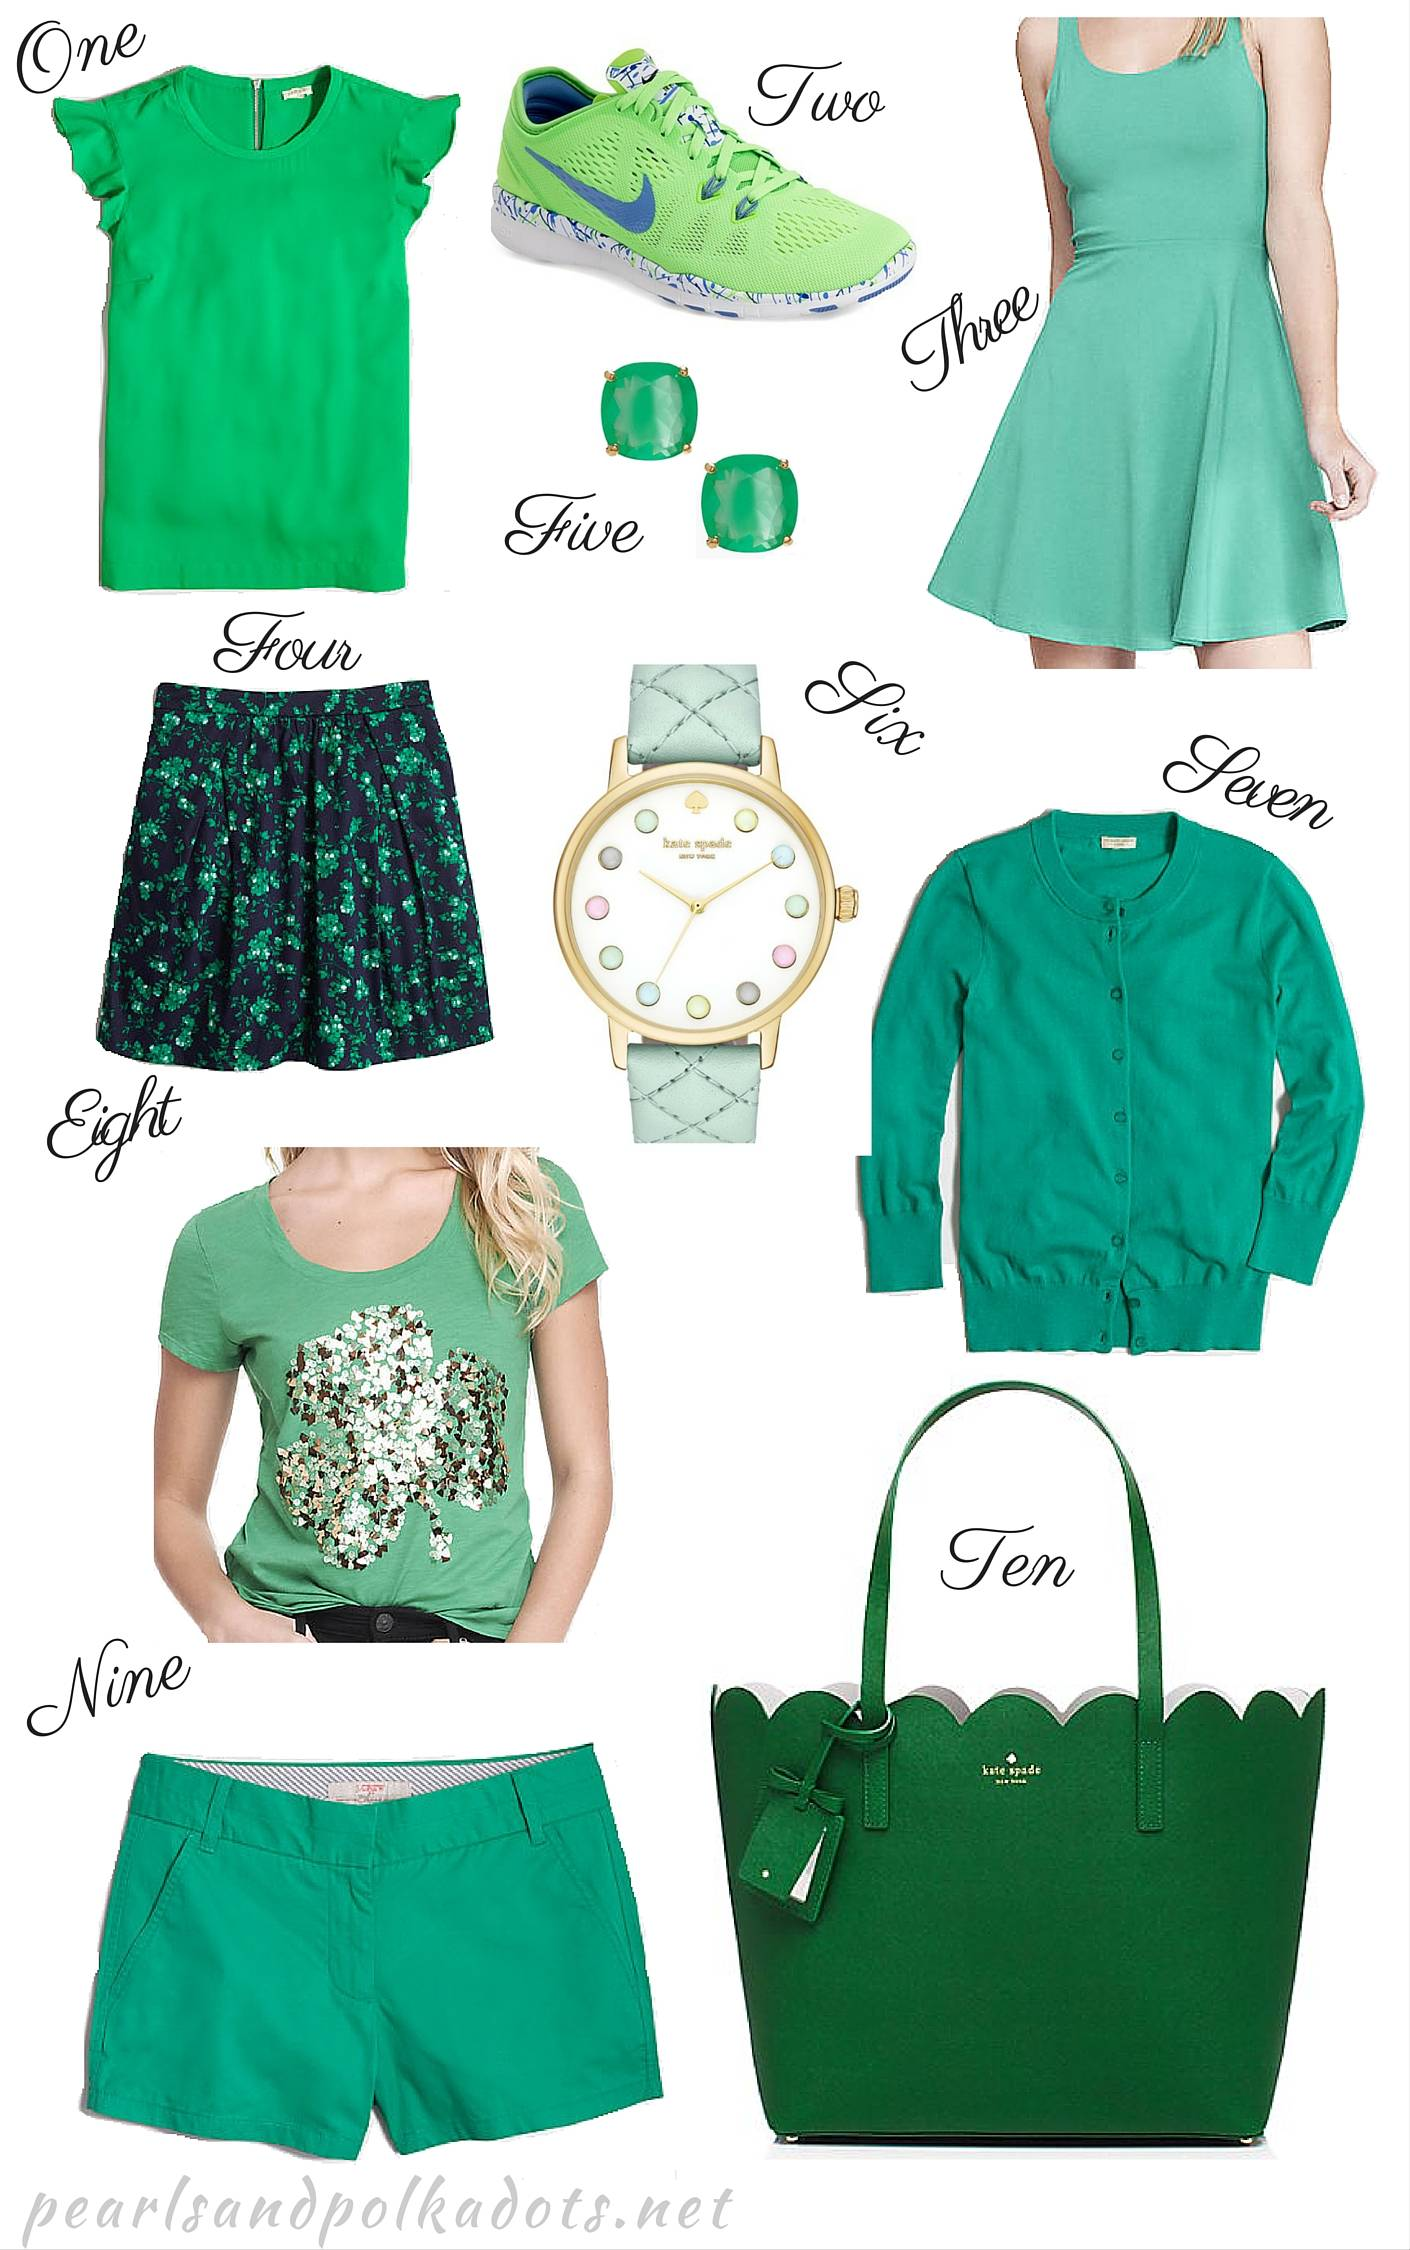 Happy St. Patrick's Day! - Pearls and Polkadots